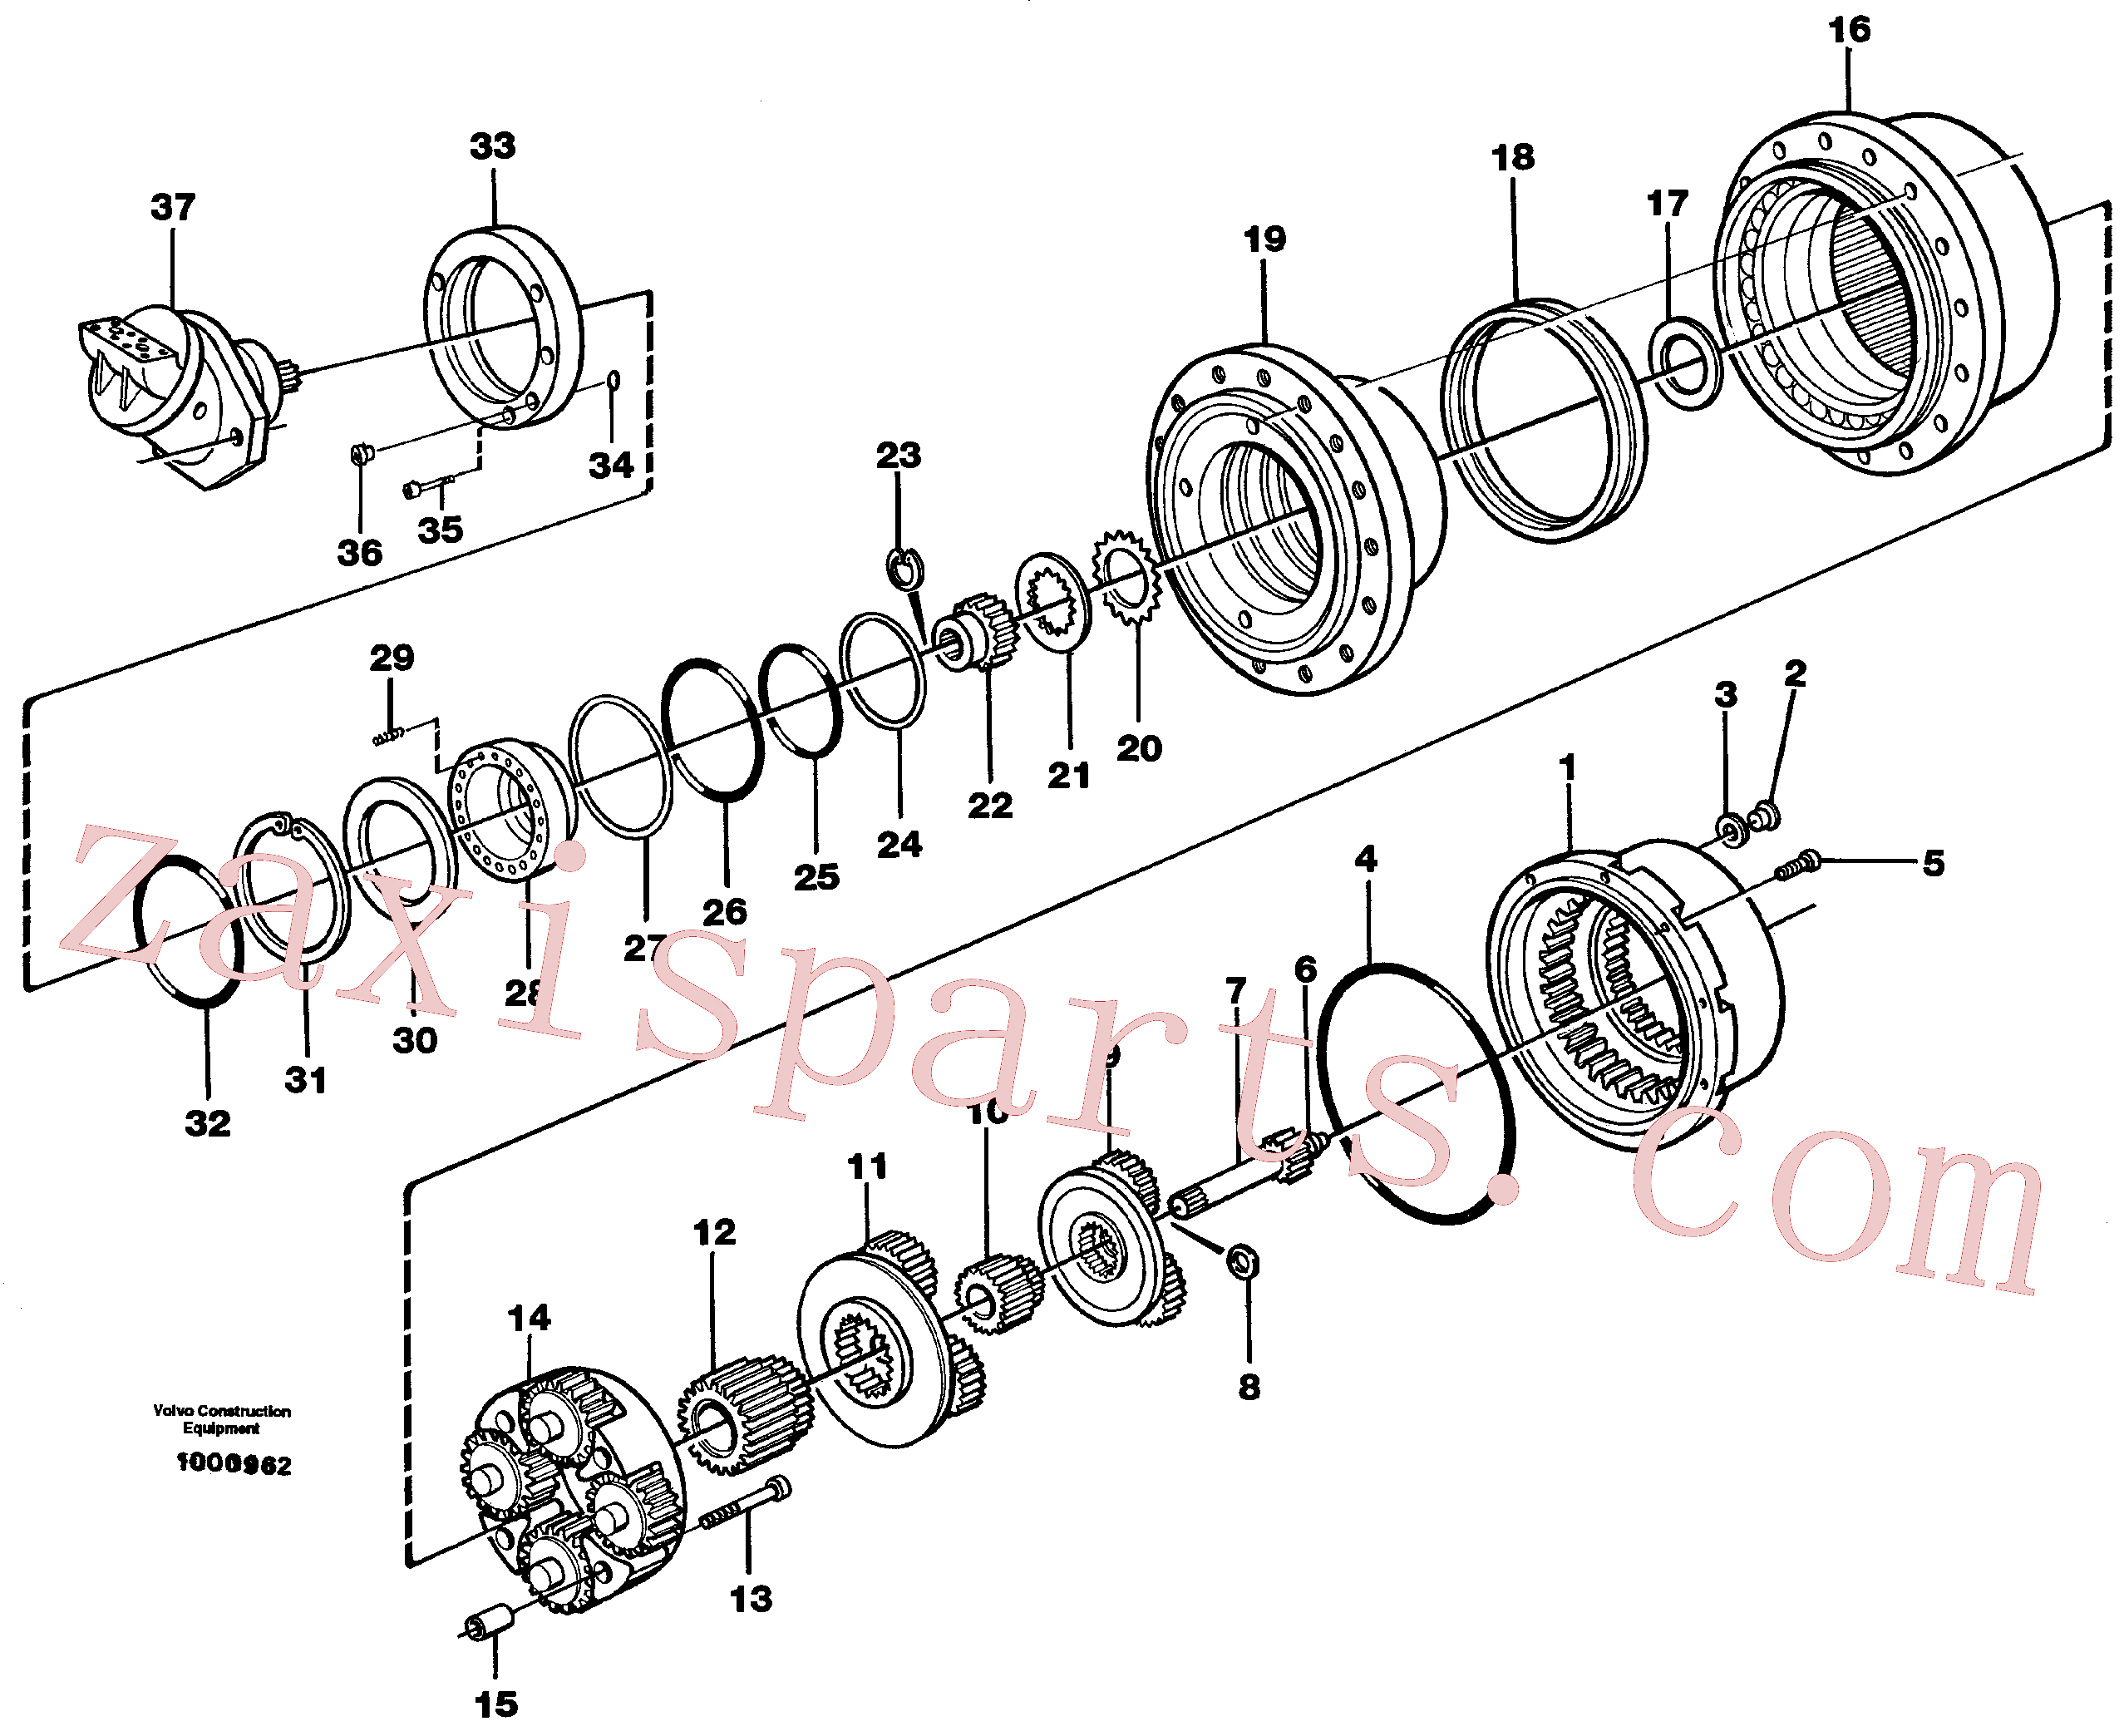 VOE11701204 for Volvo Planetary gear, travel(1000962 assembly)